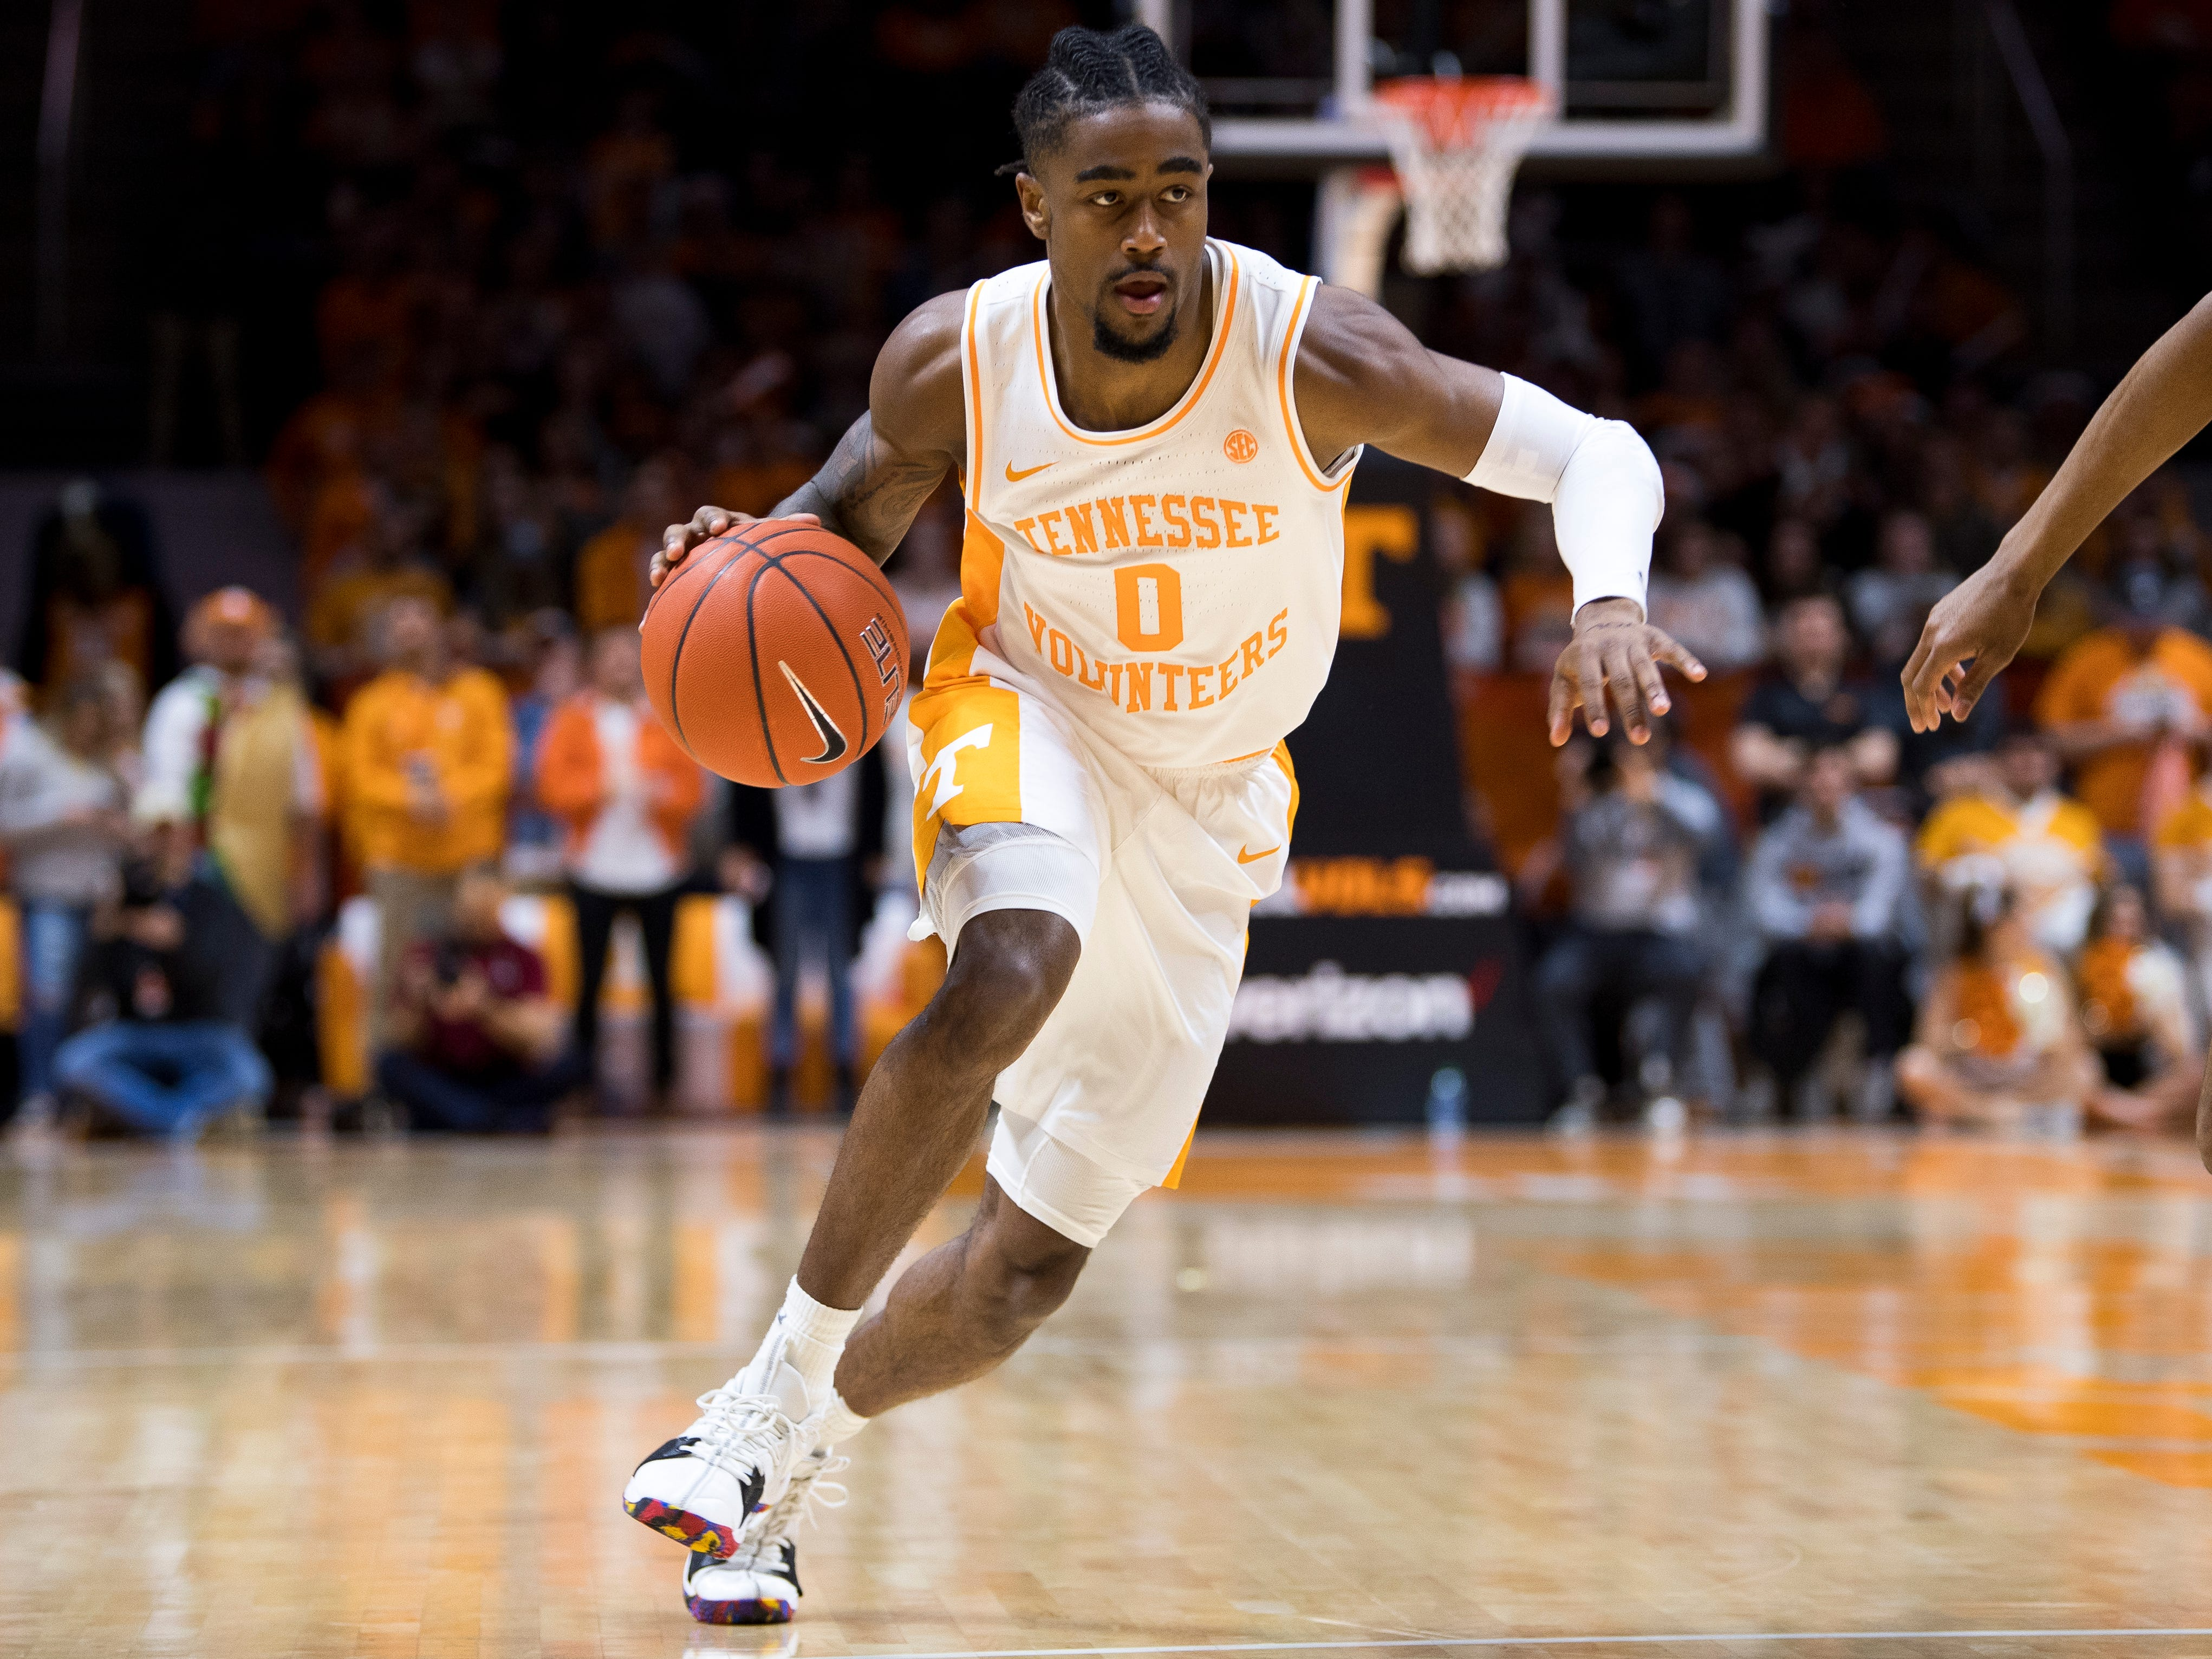 Tennessee guard Jordan Bone (0) drives down court during Tennessee's home SEC game against South Carolina at Thompson-Boling Arena in Knoxville on Wednesday, February 13, 2019.